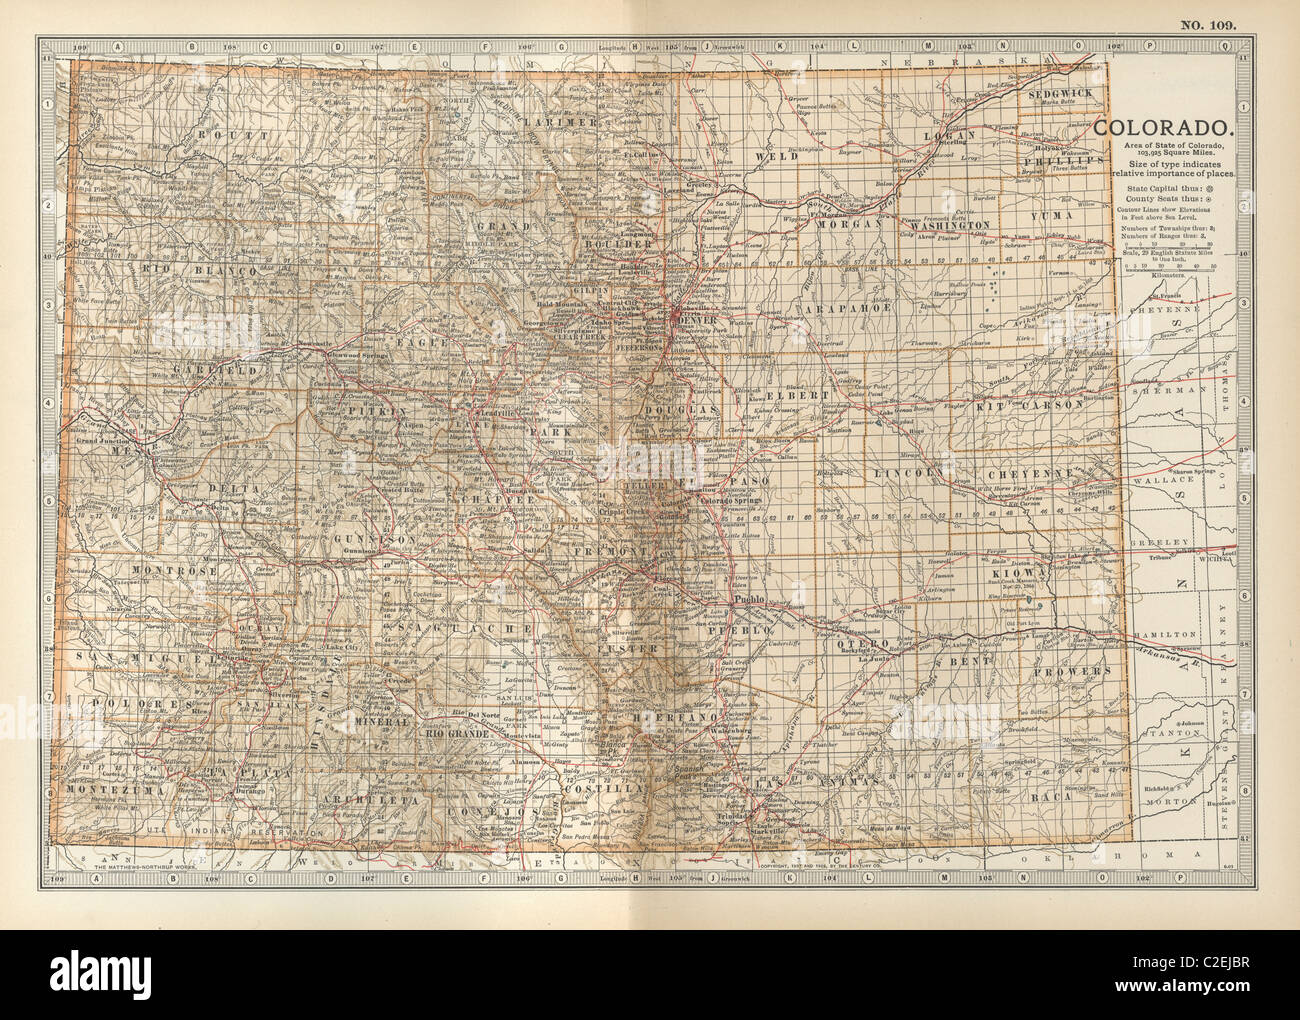 Colorado Map Stock Photos   Colorado Map Stock Images   Alamy Map of Colorado   Stock Image